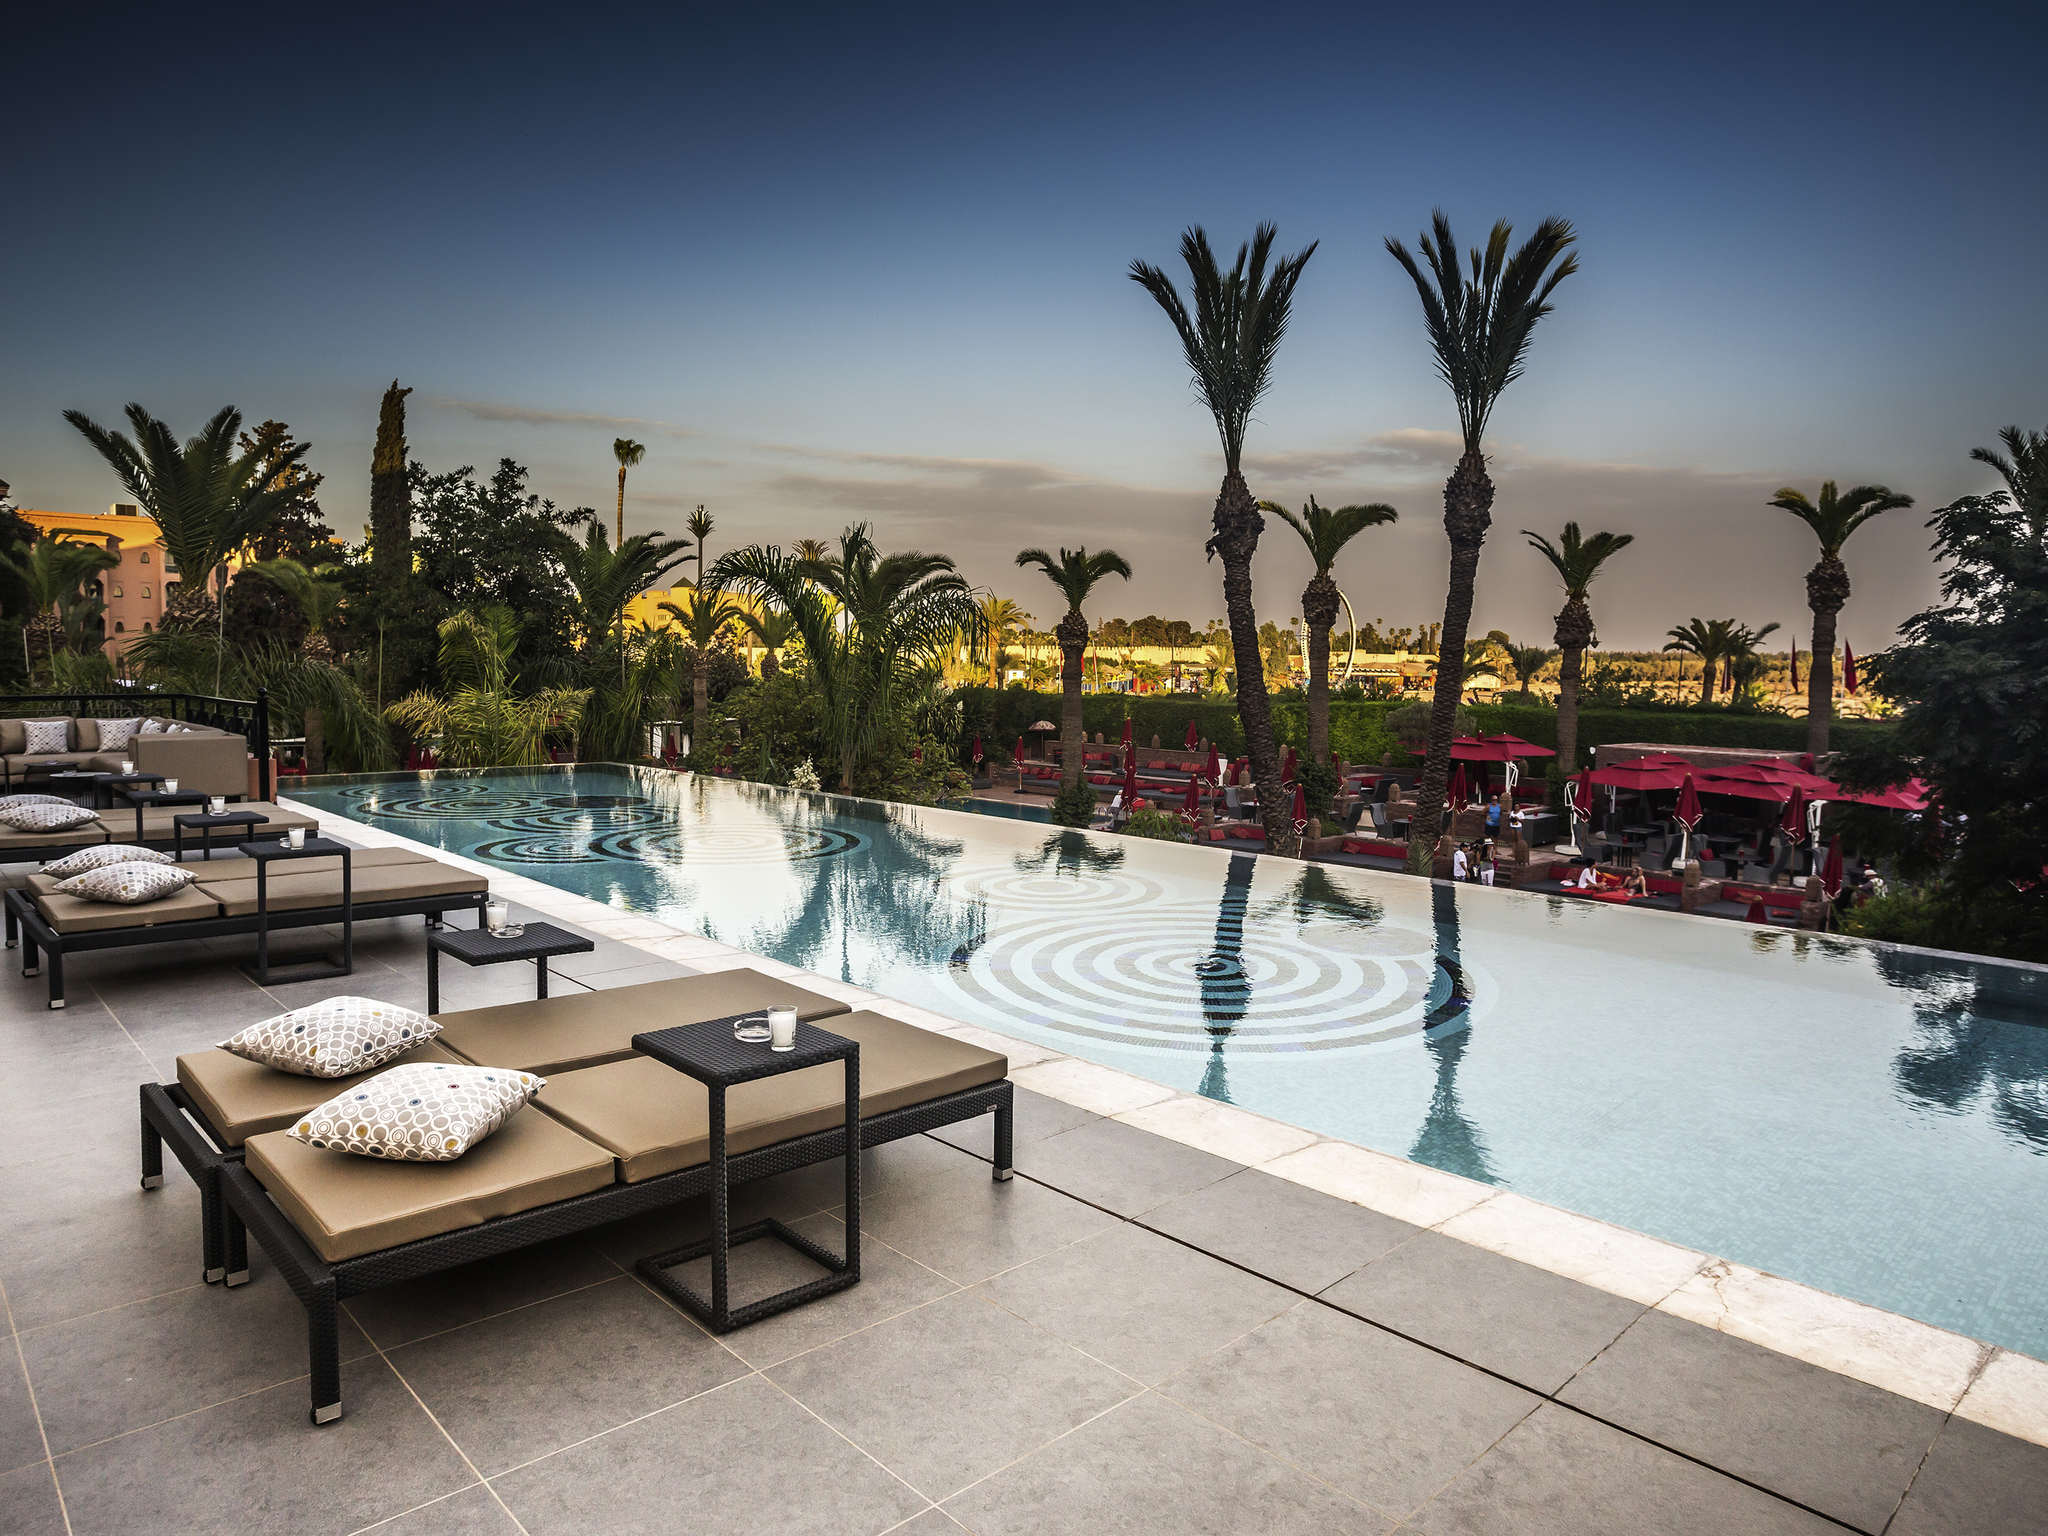 โรงแรม – Sofitel Marrakech Lounge & Spa